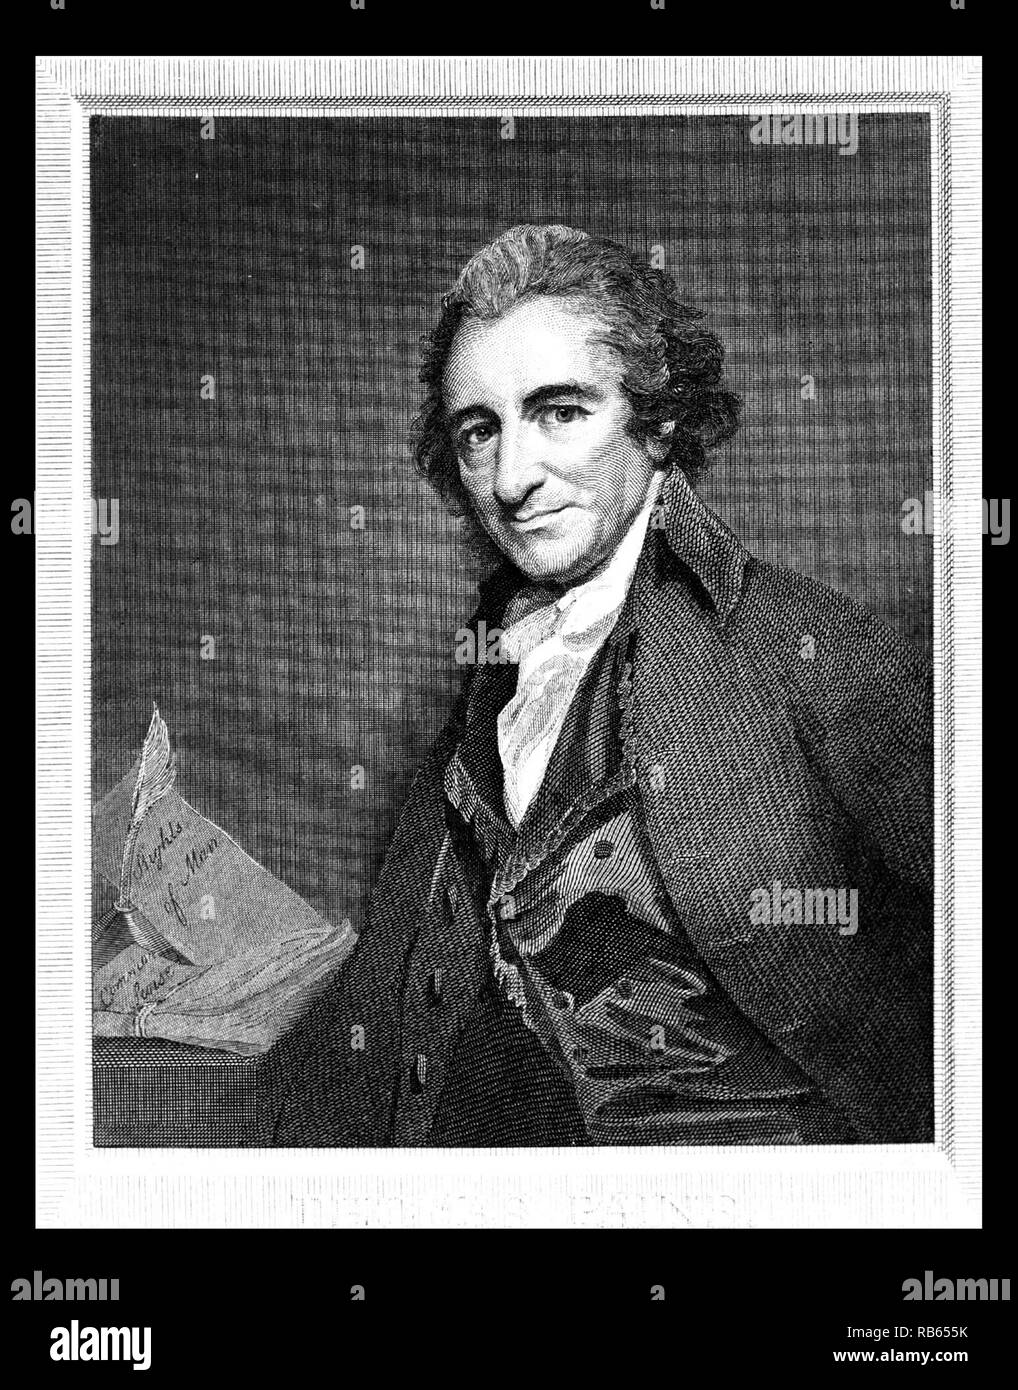 Thomas Paine by William Sharp. He was an English-American political activist, author, political theorist and revolutionary. The author of two highly influential pamphlets at the start of the American Revolution, he inspired the Patriots in 1776 to declare independence from British rule. - Stock Image